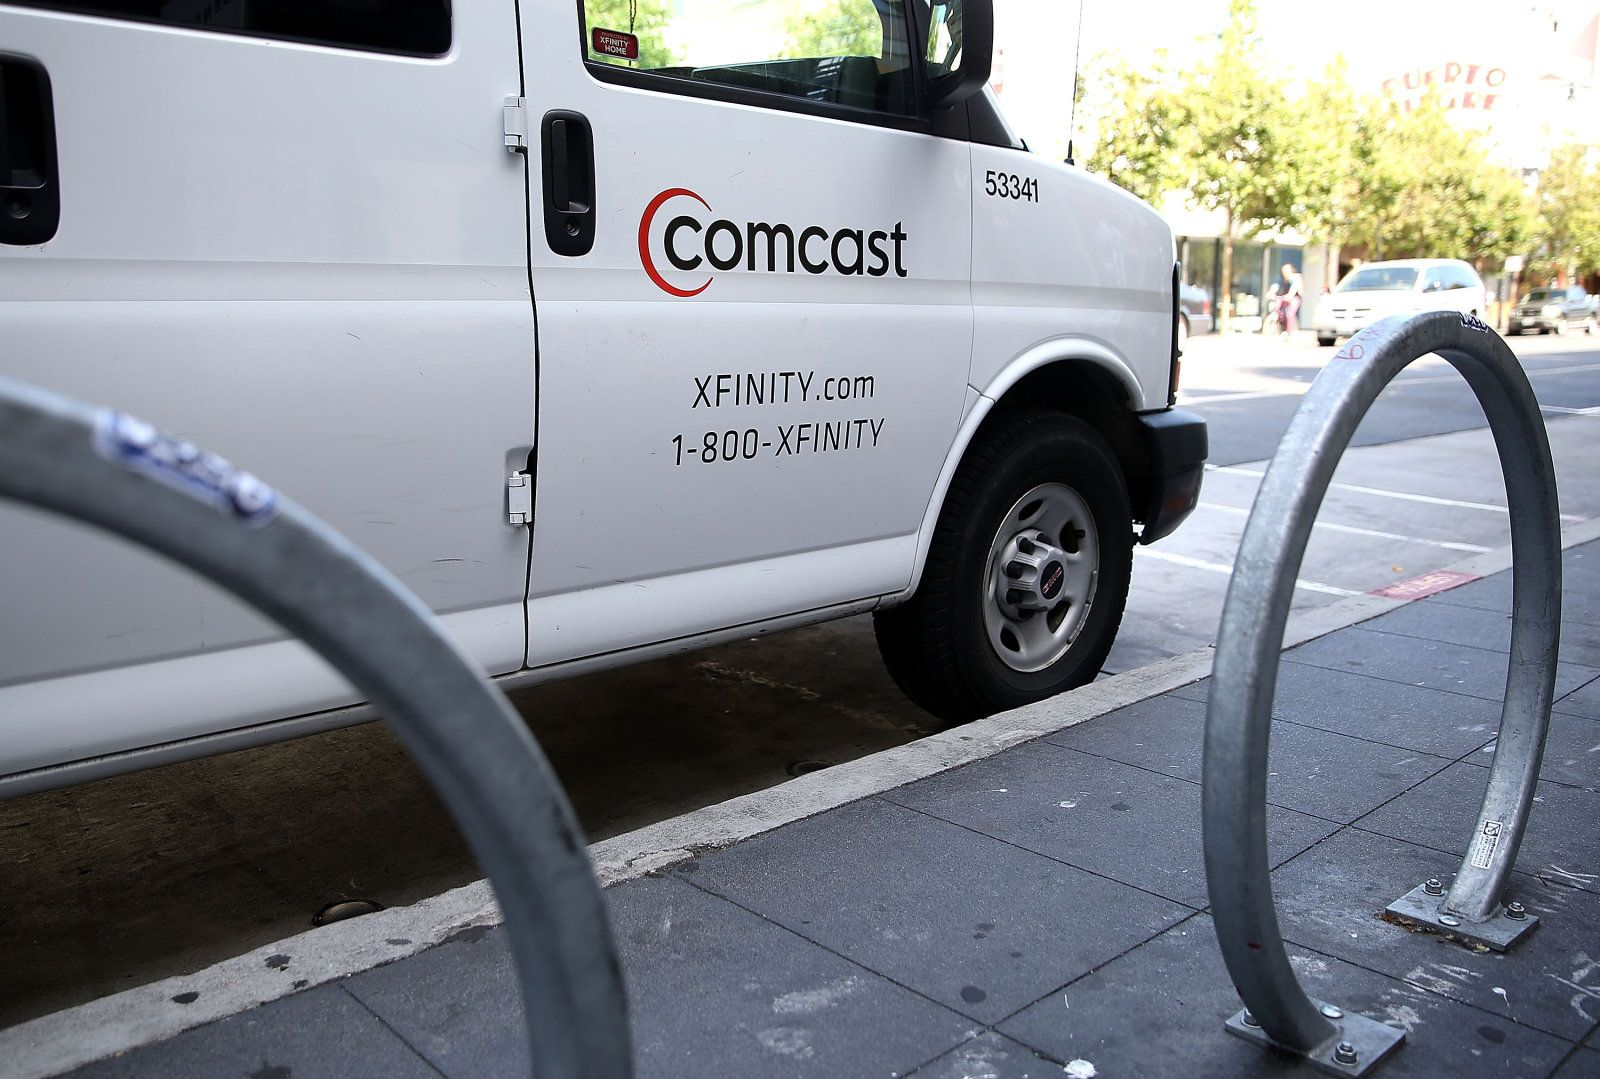 You can now pay your Comcast bill at thousands of 7